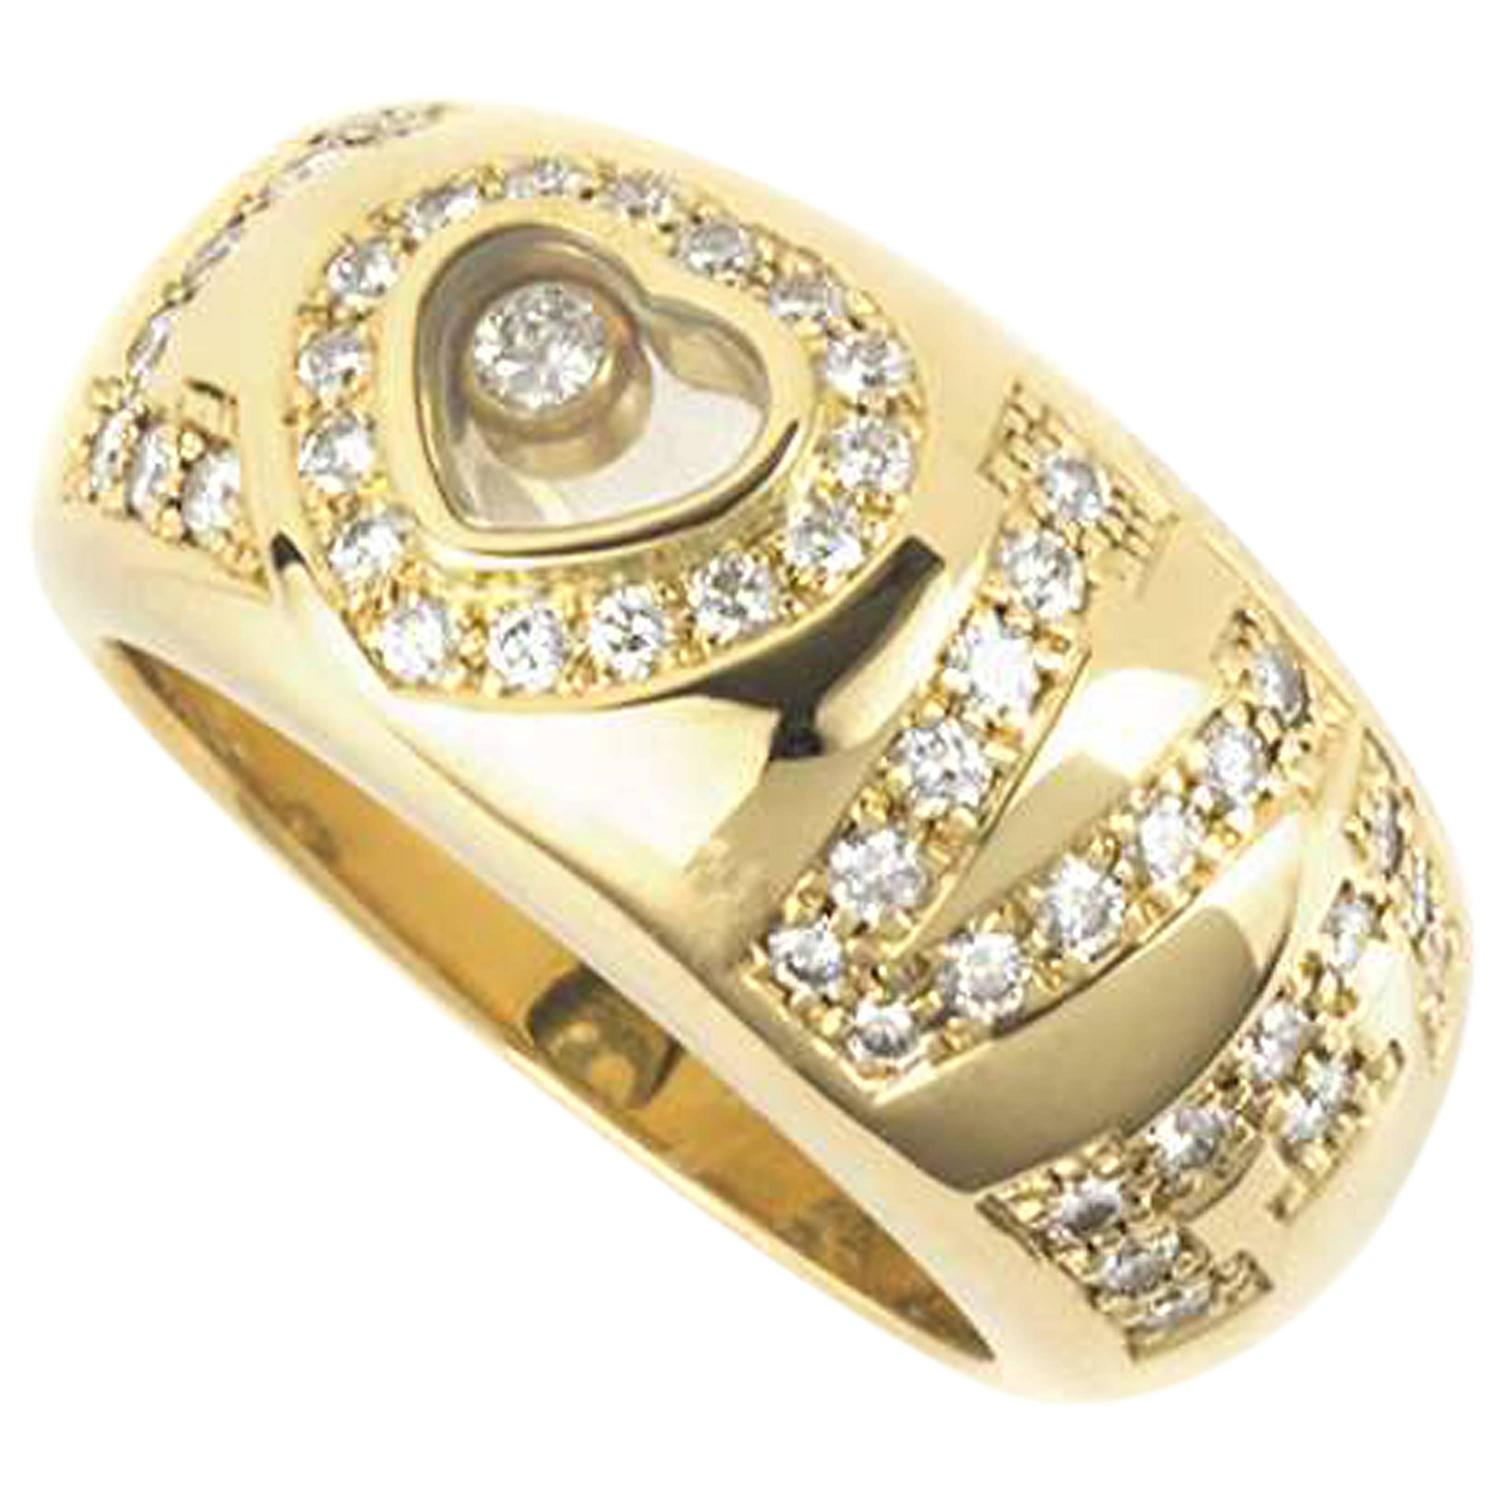 8b759bf5ce5d6 Chopard Happy Diamonds Love Ring For Sale at 1stdibs